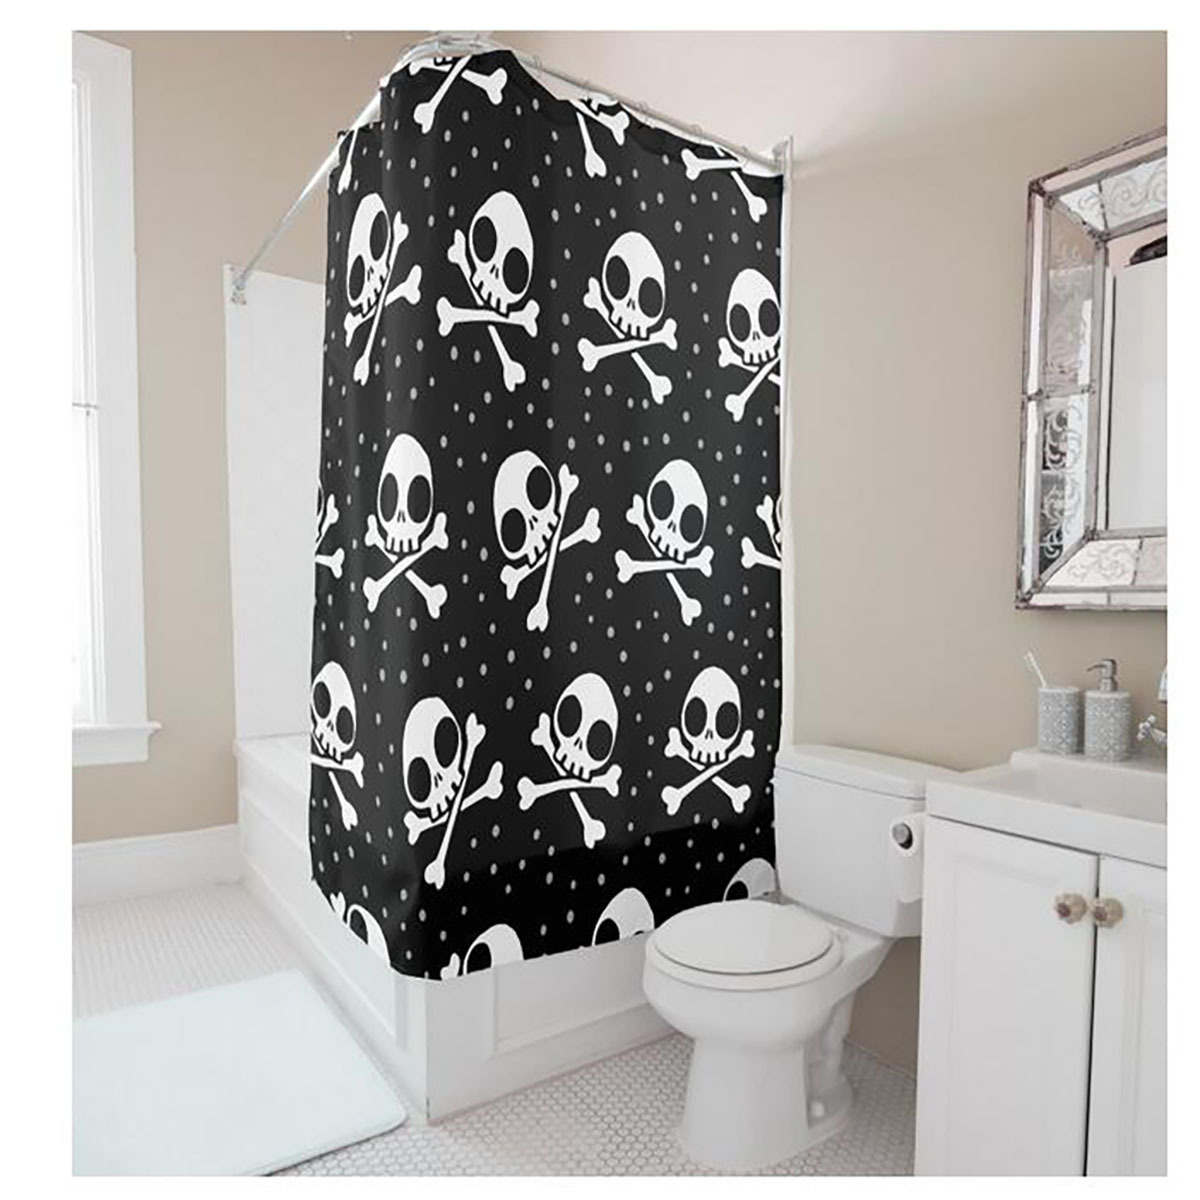 With creative shower curtains white and black creative shower curtain - Creative Personalized Skull Small Dots Digital Printing White Black Shower Curtain Polyester Waterproof Bathroom Shower Curtain